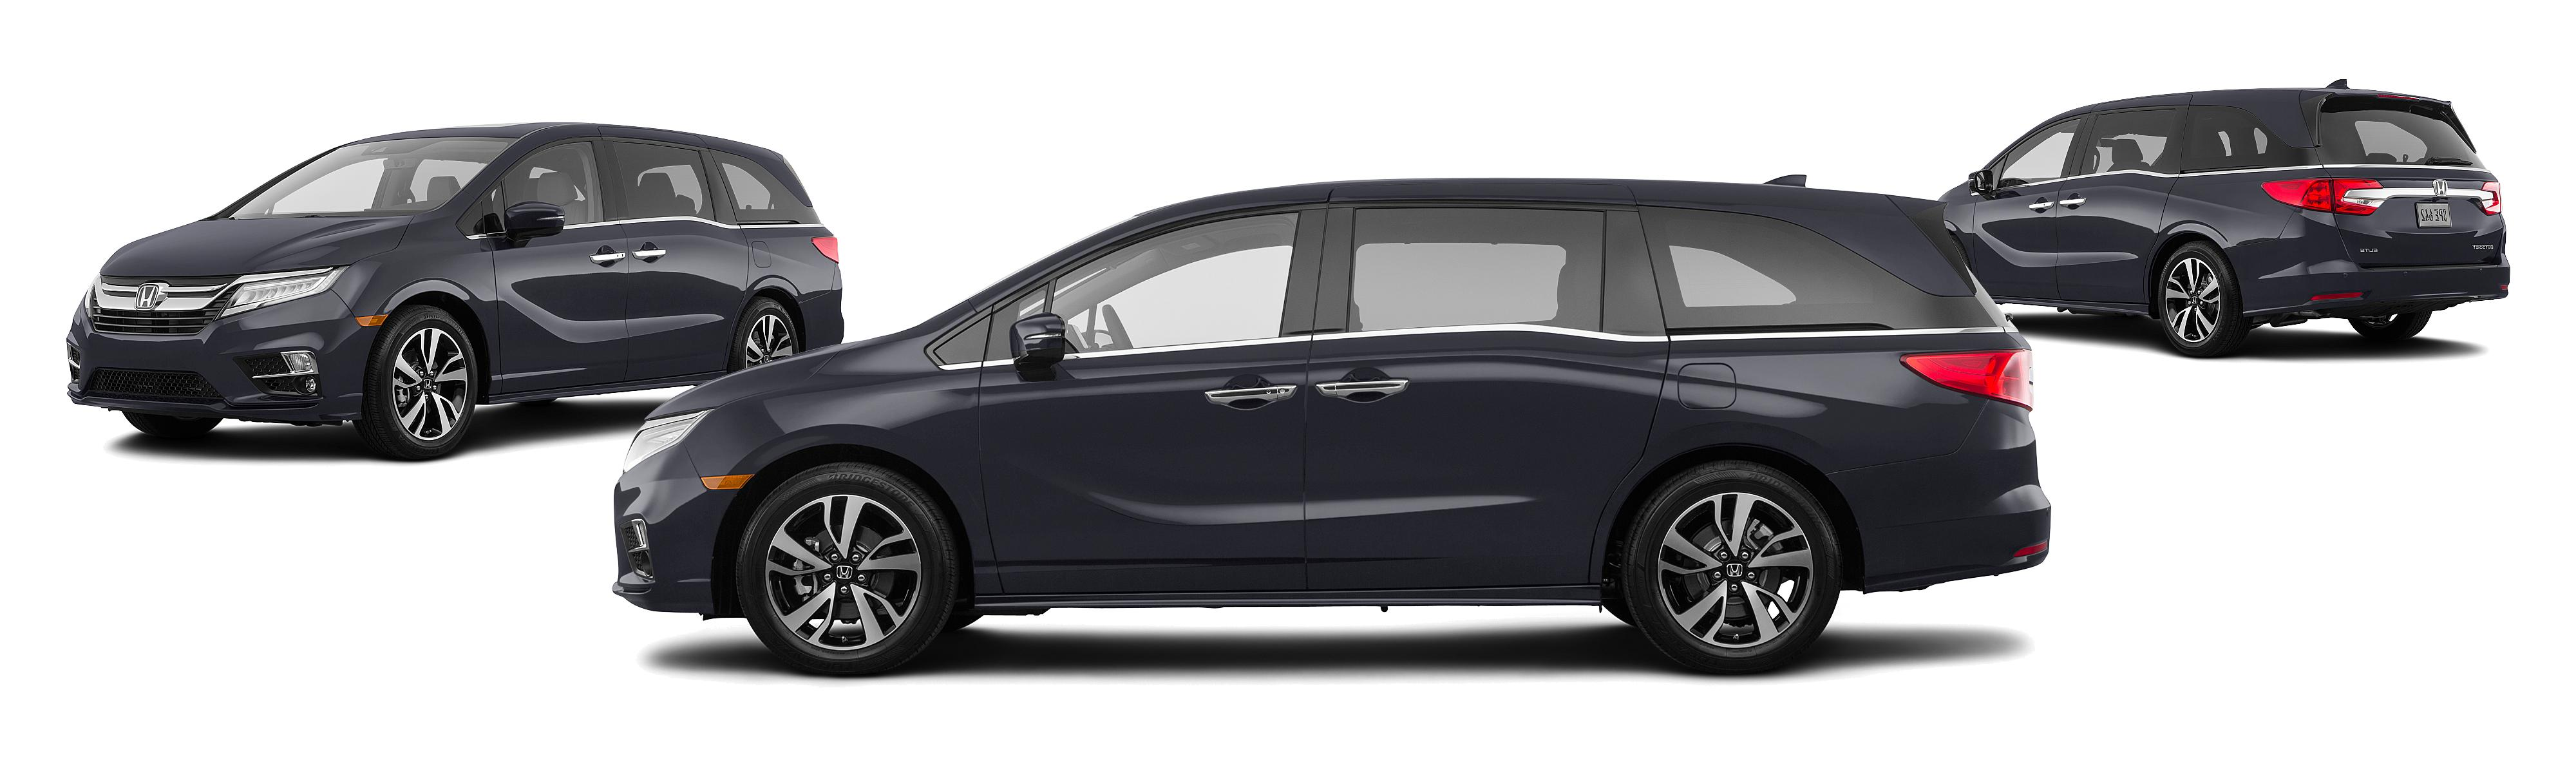 2018 honda odyssey ex l 4dr mini van w navi and res research rh groovecar com